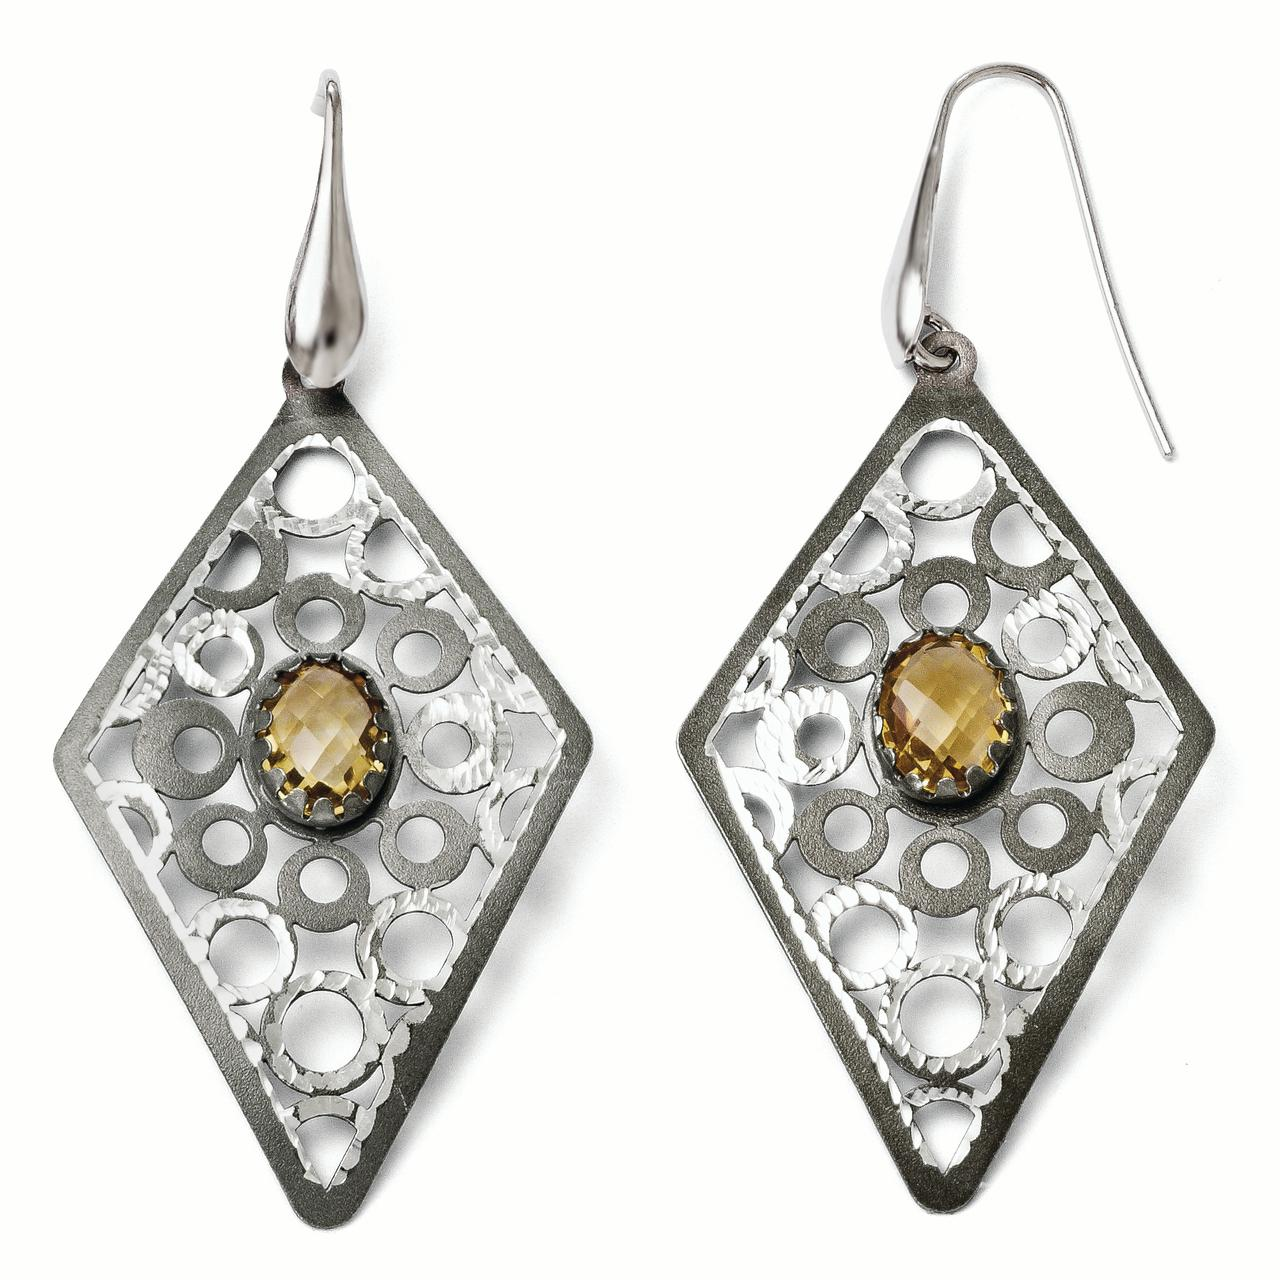 925 Sterling Silver Ruthenium Plated Yellow Citrine Drop Dangle Chandelier Earrings Fine Jewelry Gifts For Women For Her - image 4 of 4